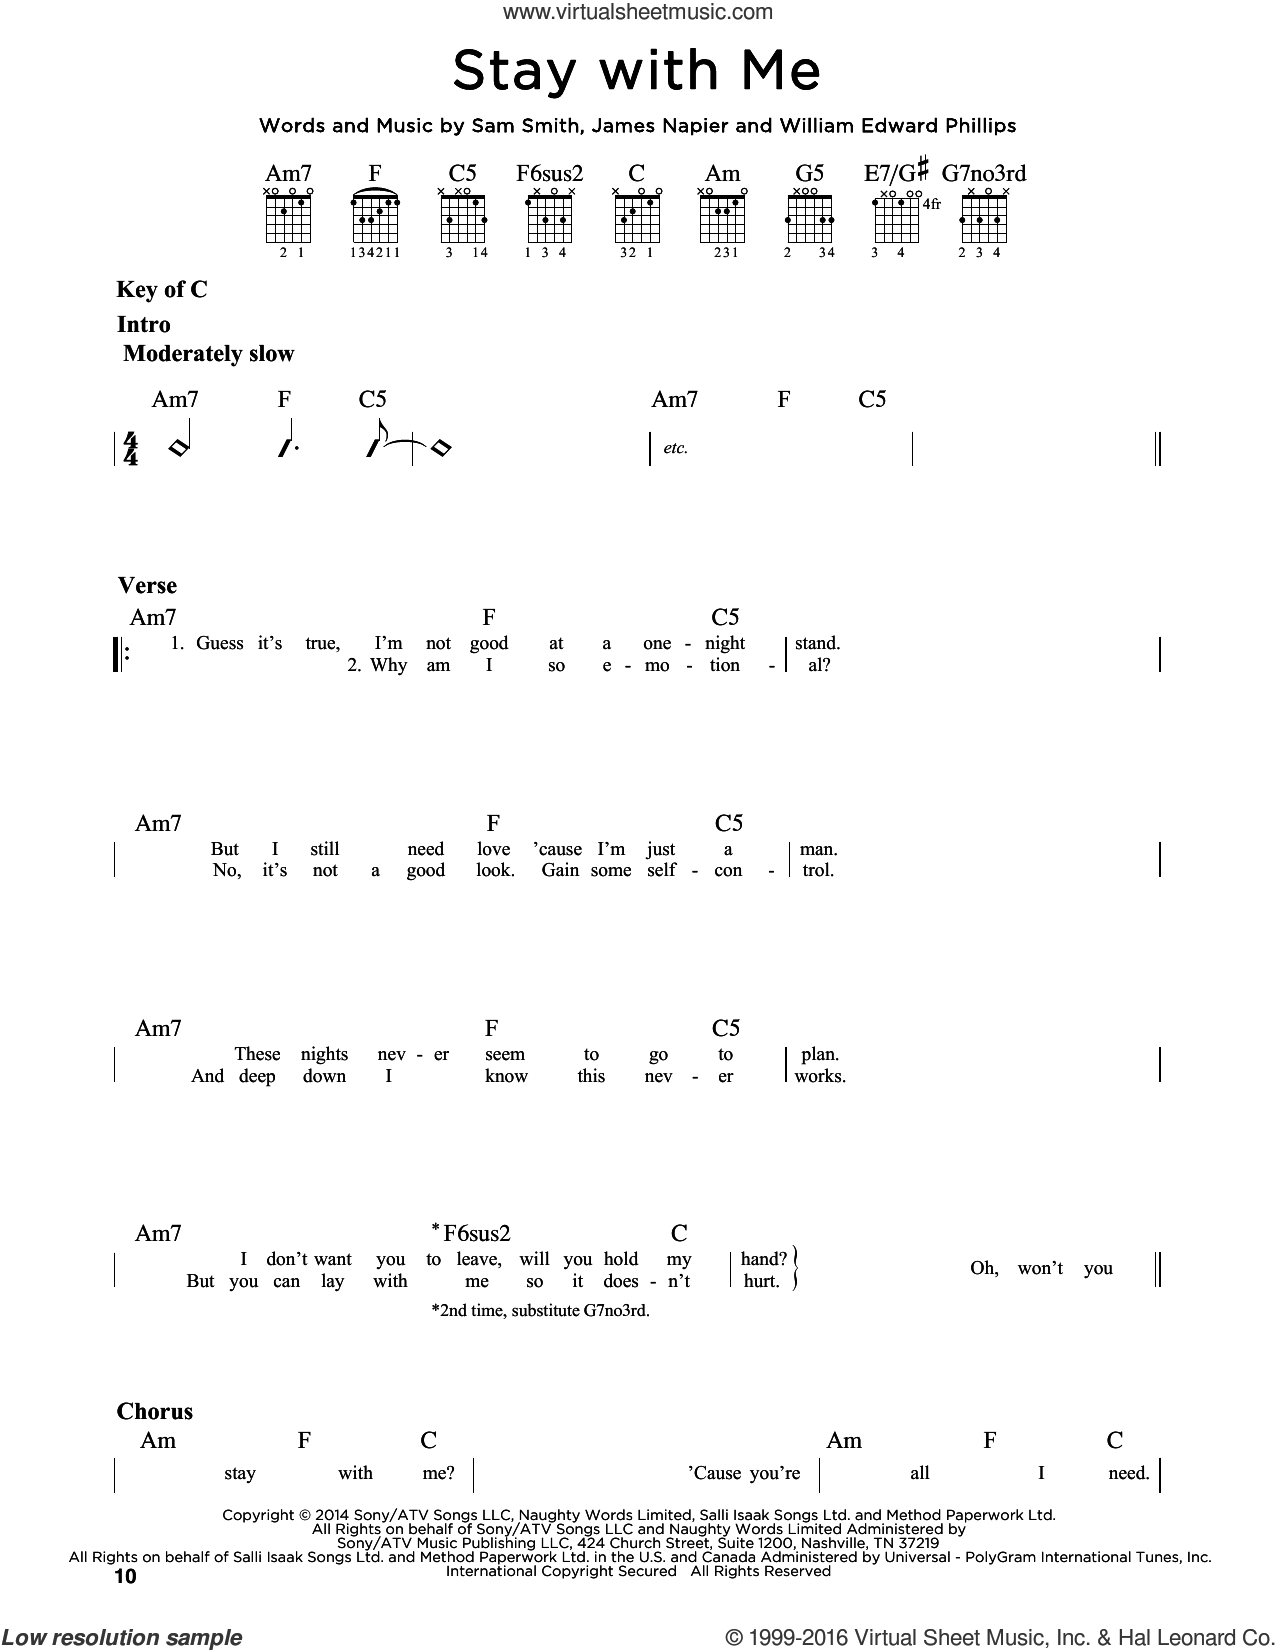 Stay With Me sheet music for guitar solo (lead sheet) by William Edward Phillips, James Napier, Jeff Lynne, Sam Smith and Tom Petty. Score Image Preview.